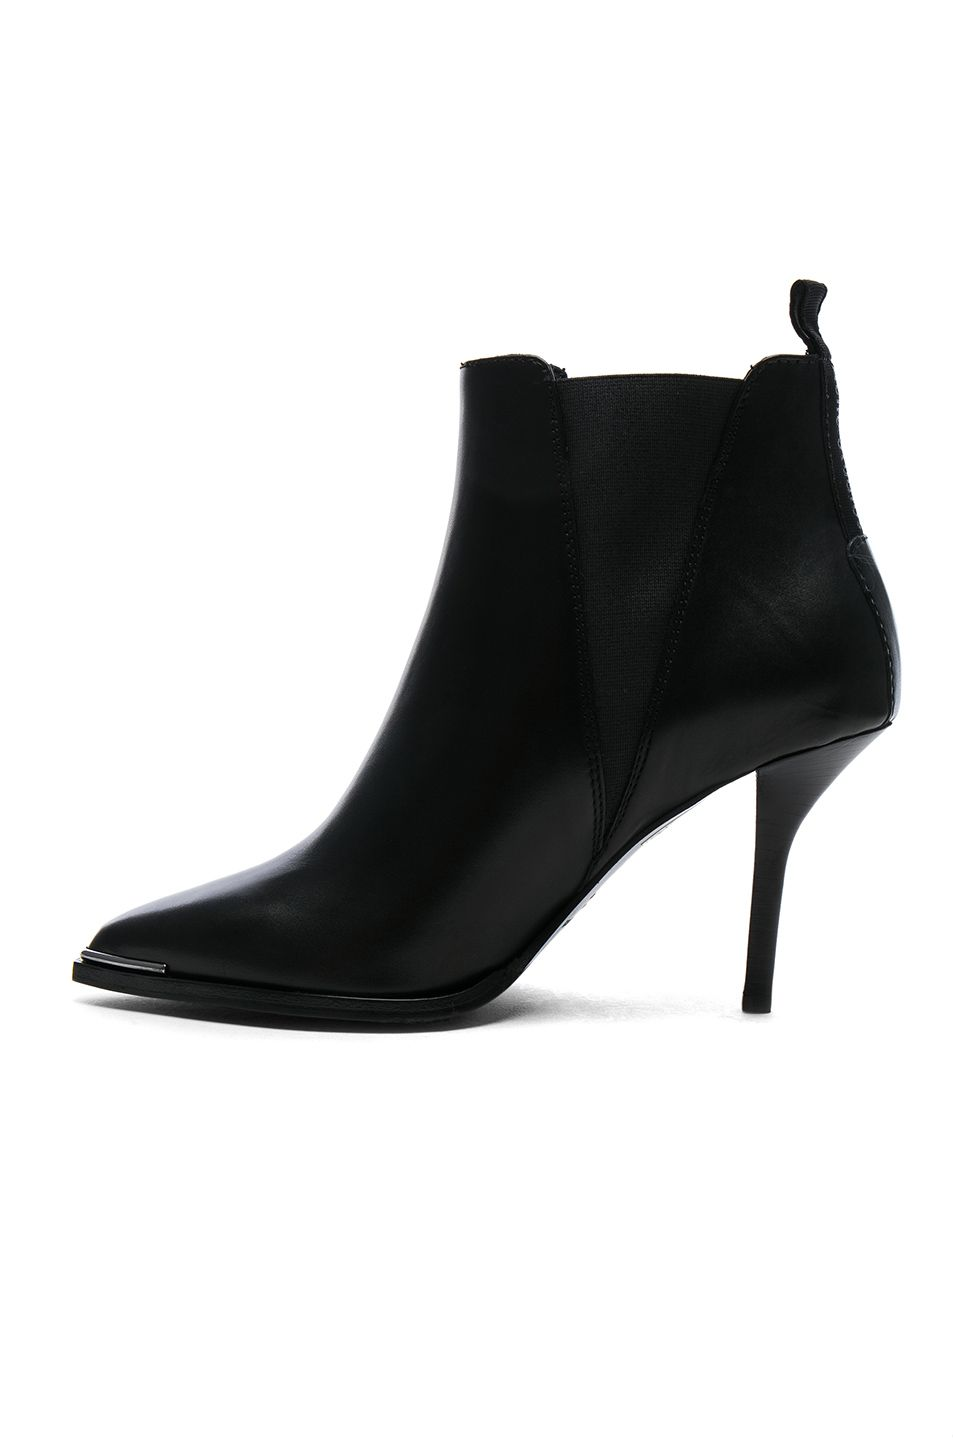 Acne Leather Jemma Booties in . vCeae